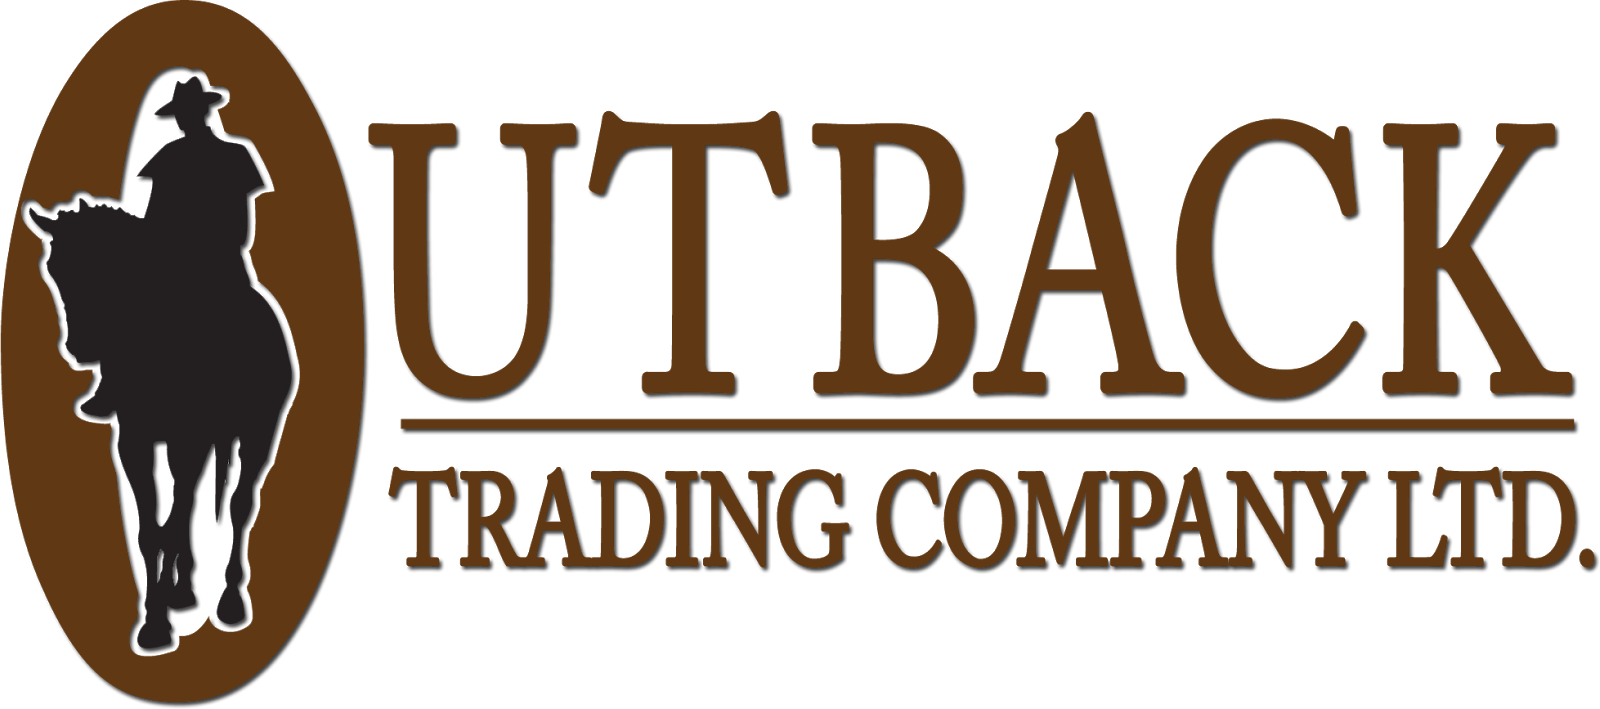 Visit Our Friend: Outback Trading Company Ltd.